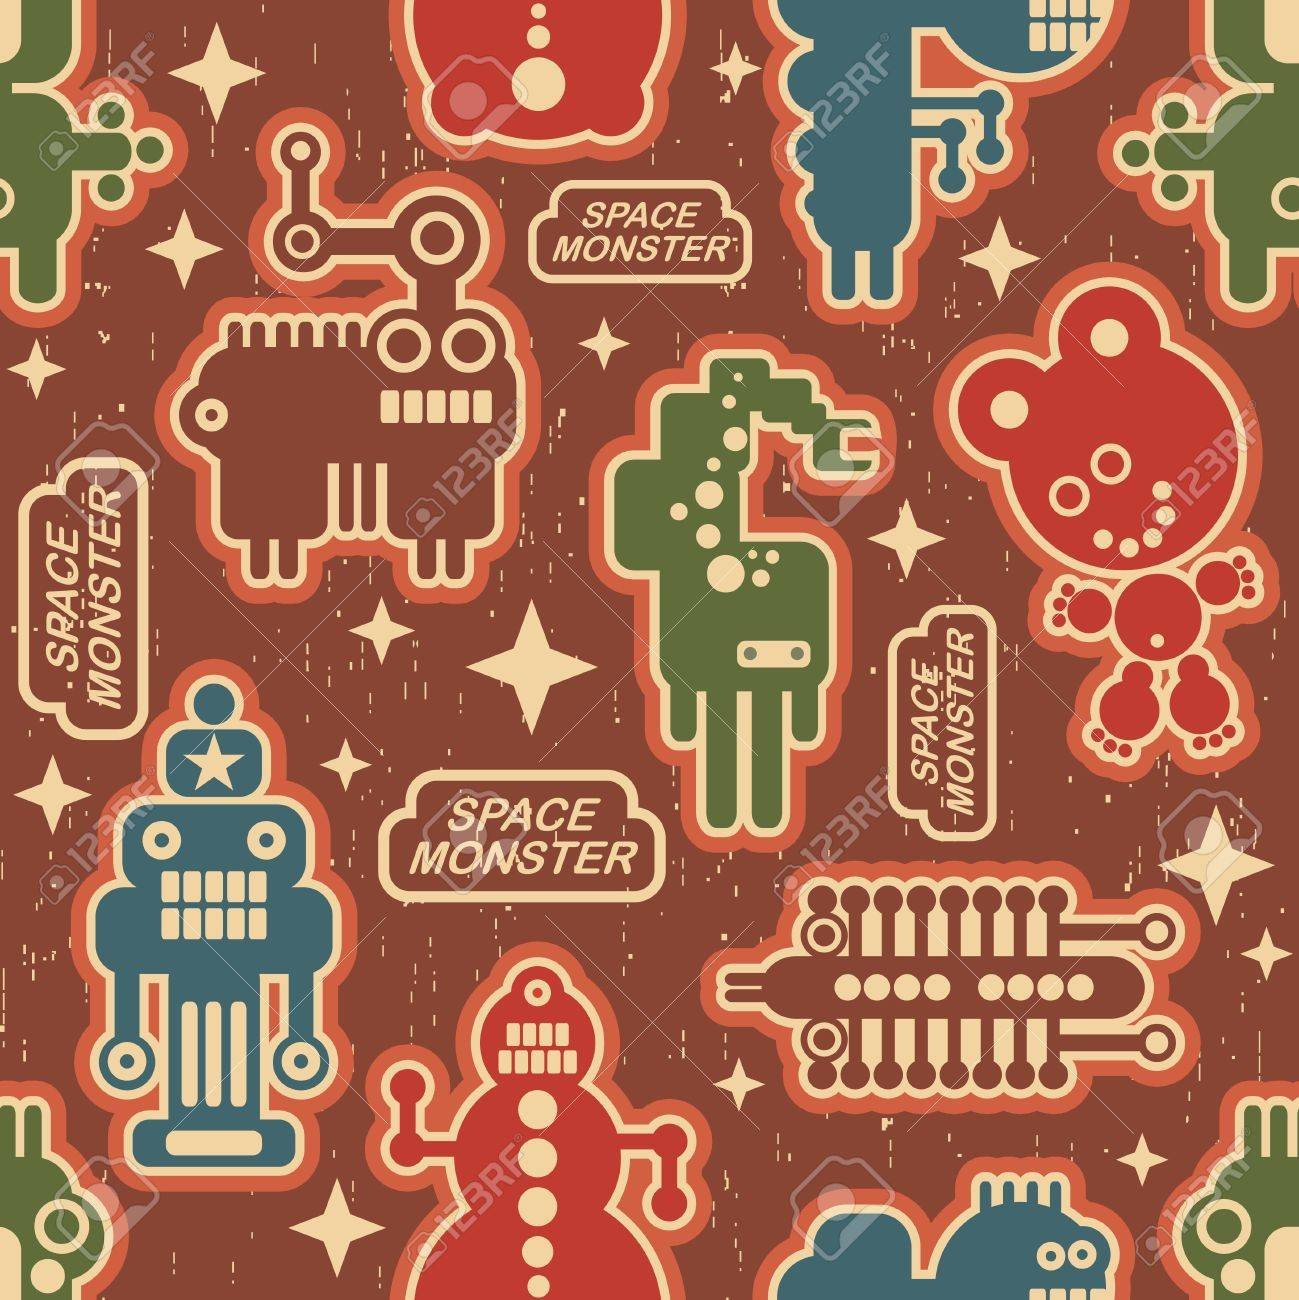 Vintage seamless texture with monsters and robots. Stock Vector - 14984835